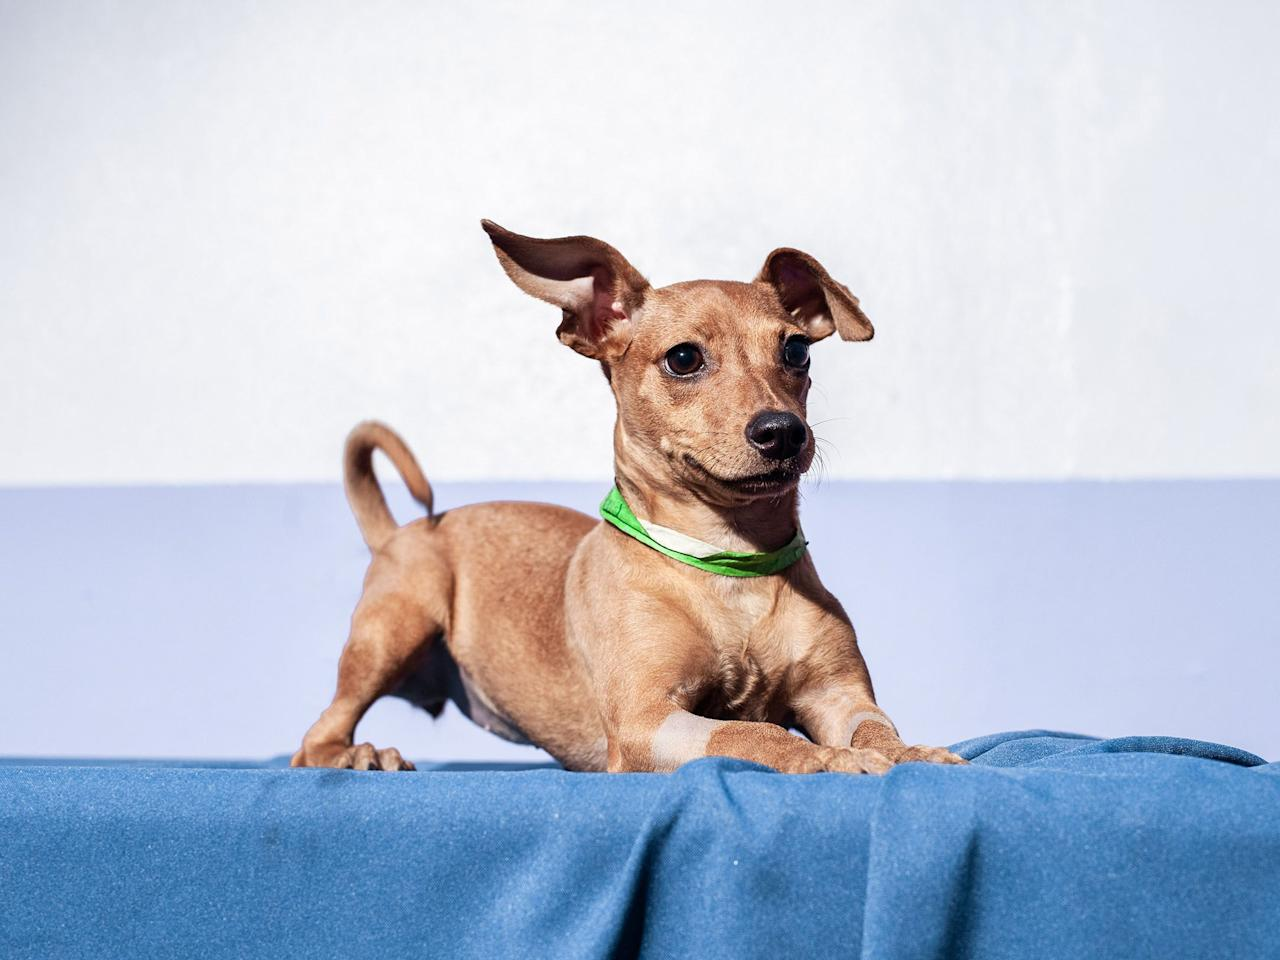 """<p>National Mixed Breed Dog Day is December 2nd (and July 31st) and we are celebrating with photos of the most adorable mutts we could find. These pups come from all around the nation and are mostly available for adoption. It's important that we remember to adopt pups from local shelters whenever possible. <a href=""""https://www.aspca.org/animal-homelessness/shelter-intake-and-surrender/pet-statistics"""" target=""""_blank"""">670,000 shelter dogs are euthanized every year</a> and a big percentage of those pups are mixed breed. Organizations like the <a href=""""https://www.aspca.org/"""" target=""""_blank"""">ASPCA</a> and <a href=""""https://www.thesatoproject.org/"""" target=""""_blank"""">The Sato Project</a> are committed to helping these cute doggies. Check out some of the most lovable best friends we could find.  </p>"""